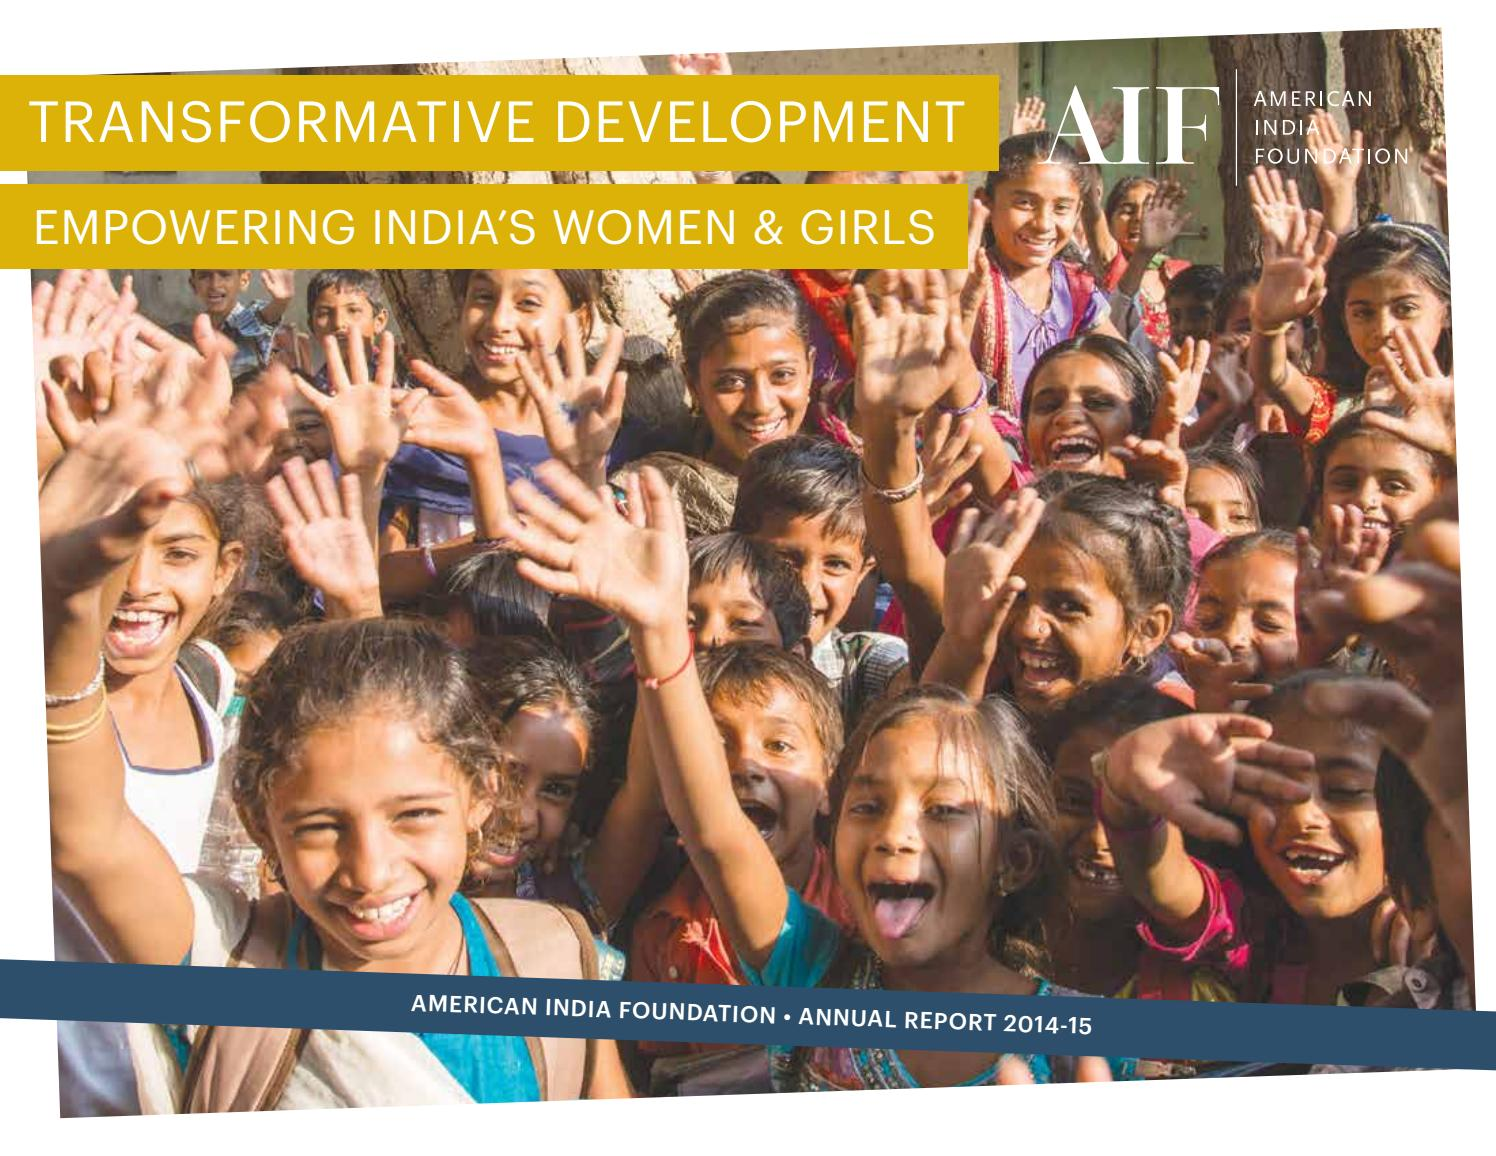 Annual Report 2014-15 by American India Foundation - issuu